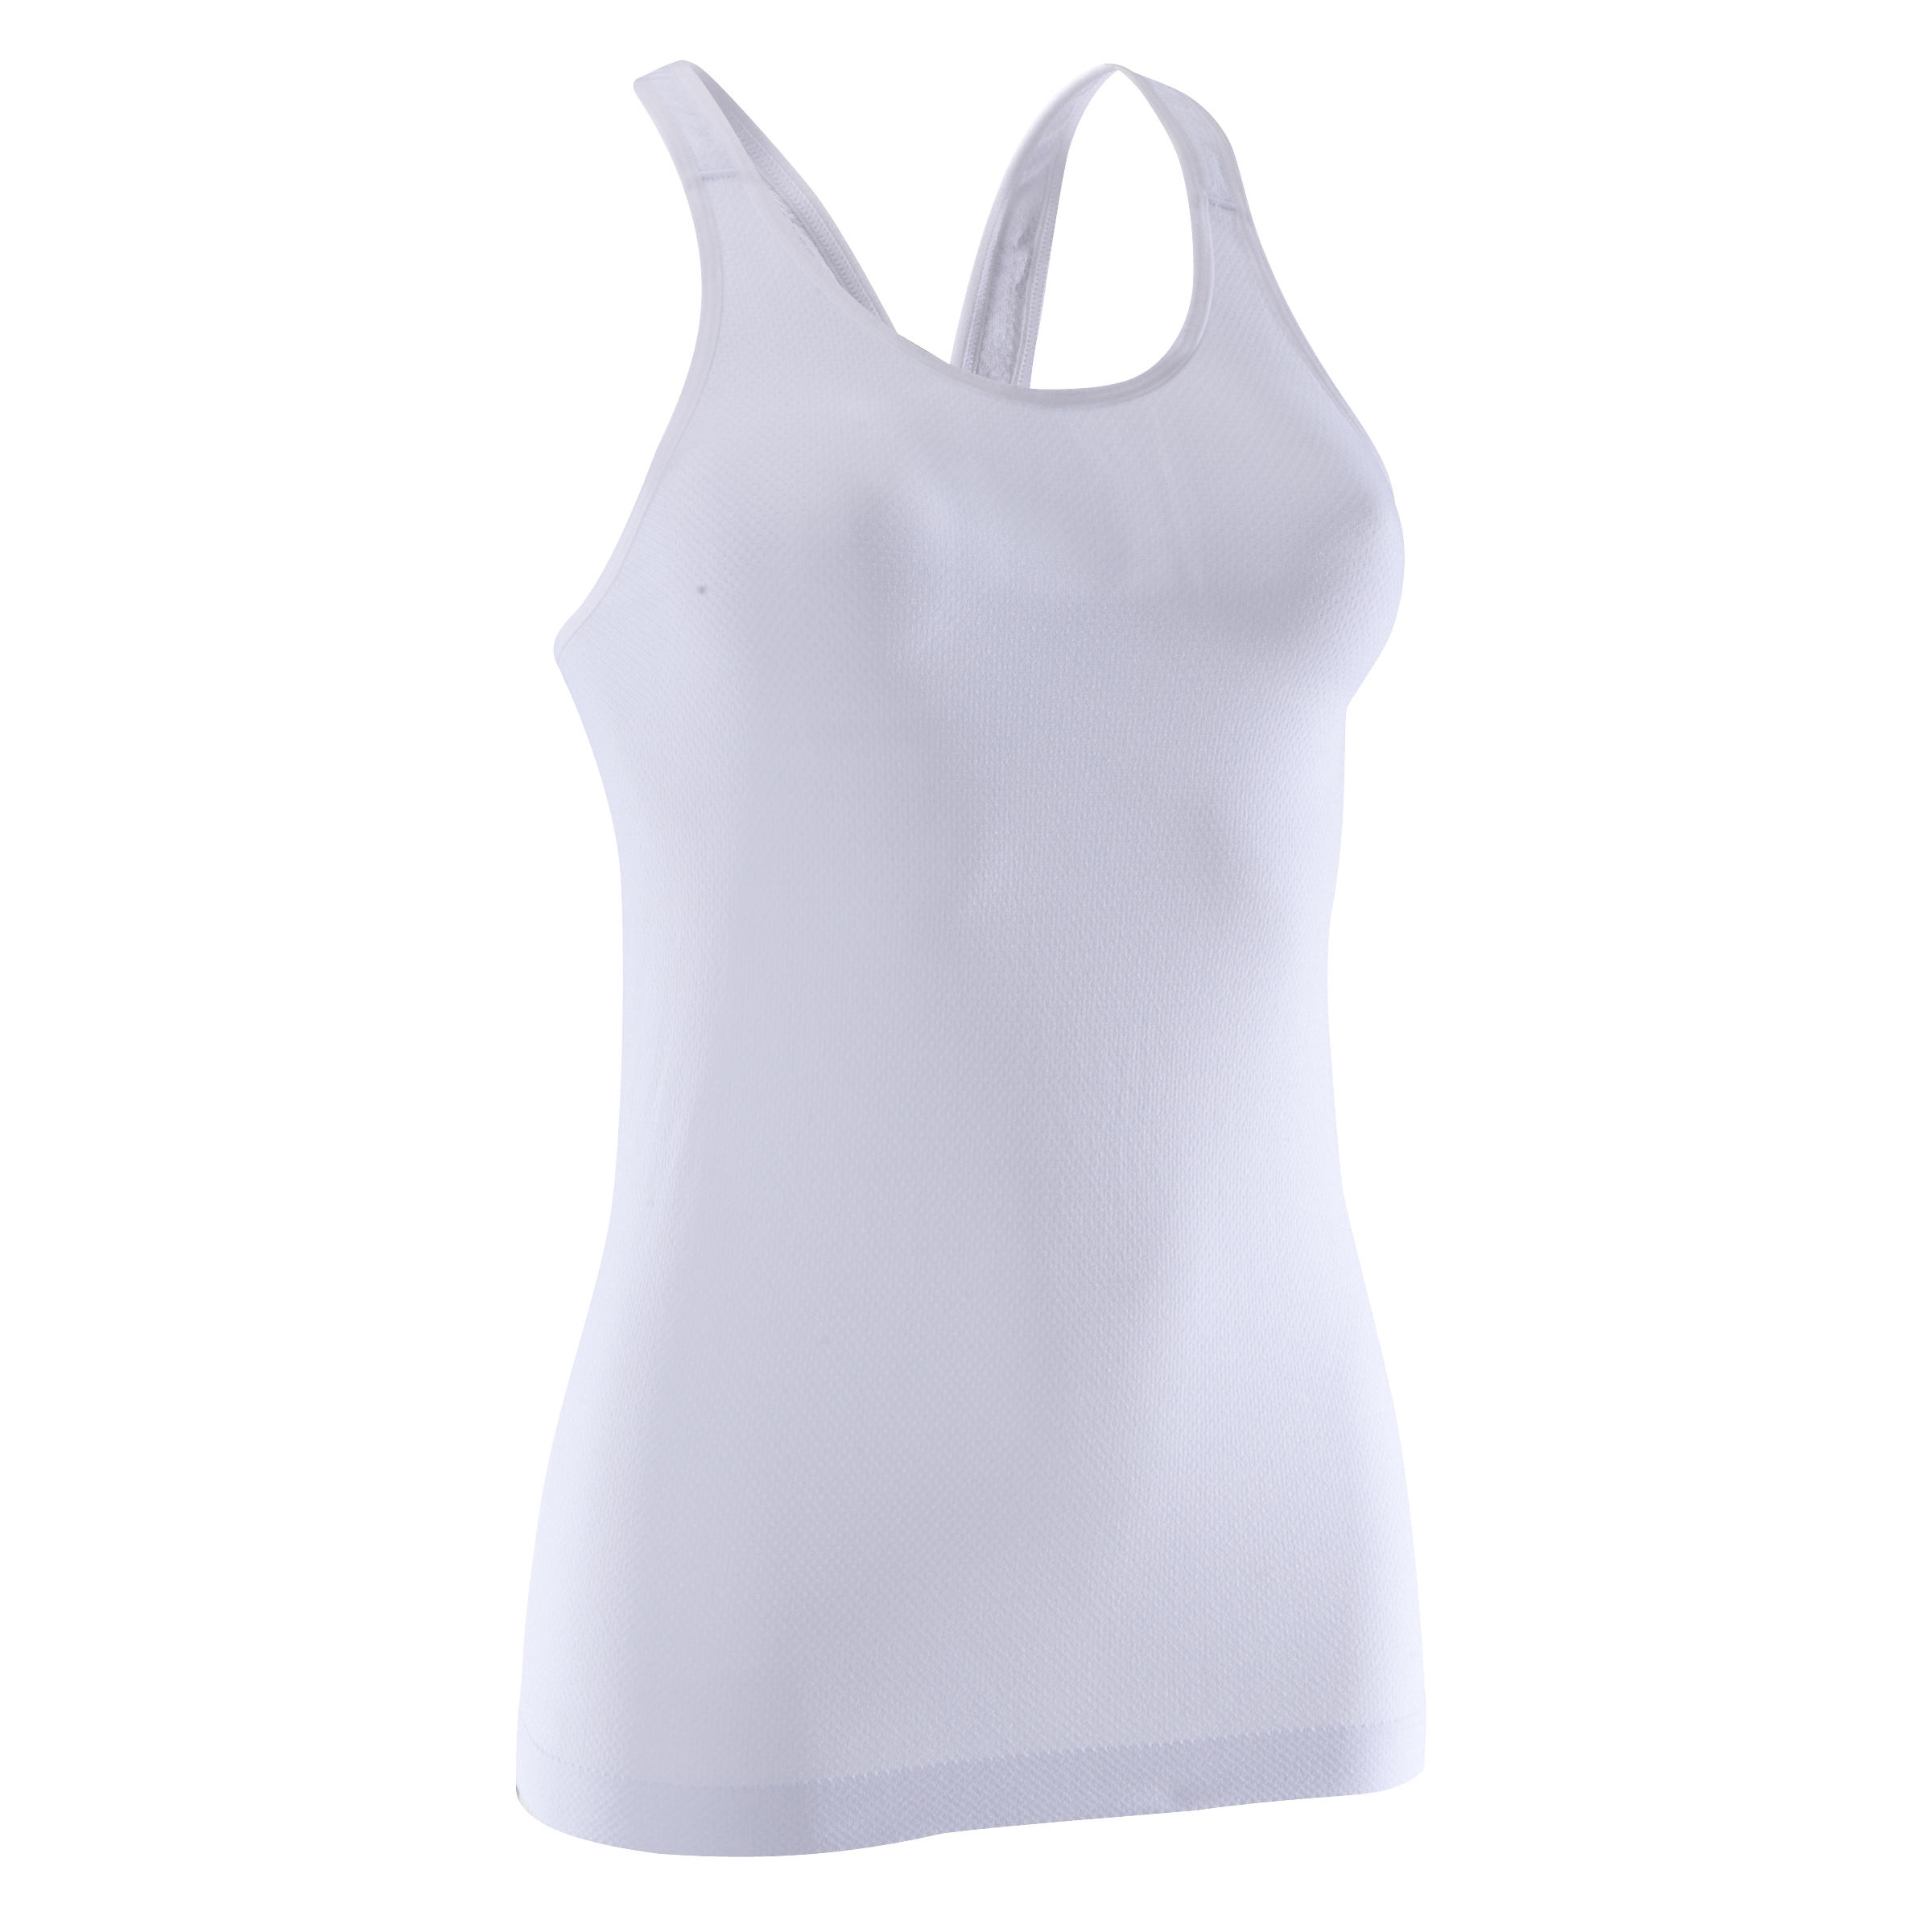 Yoga+ Women's Seamless Tank Top - White